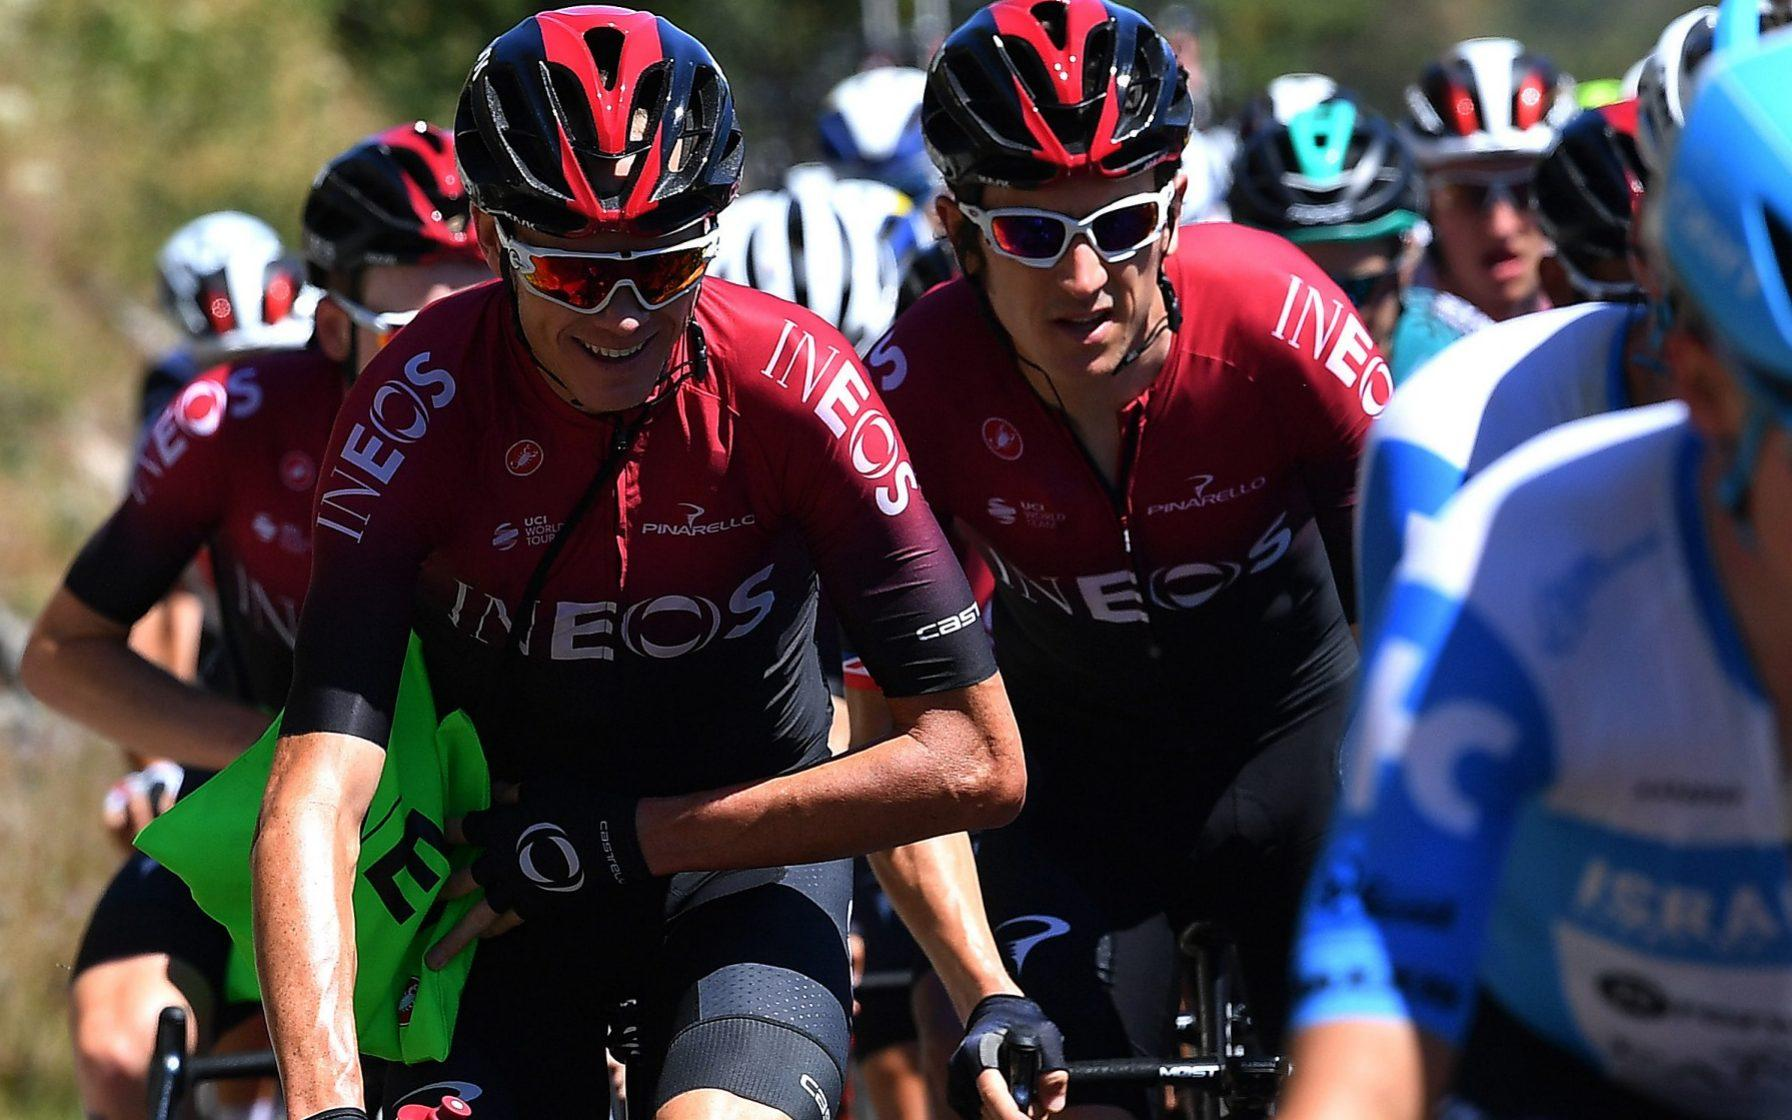 Chris Froome and Geraint Thomas left out of Ineos' Tour de France line-up